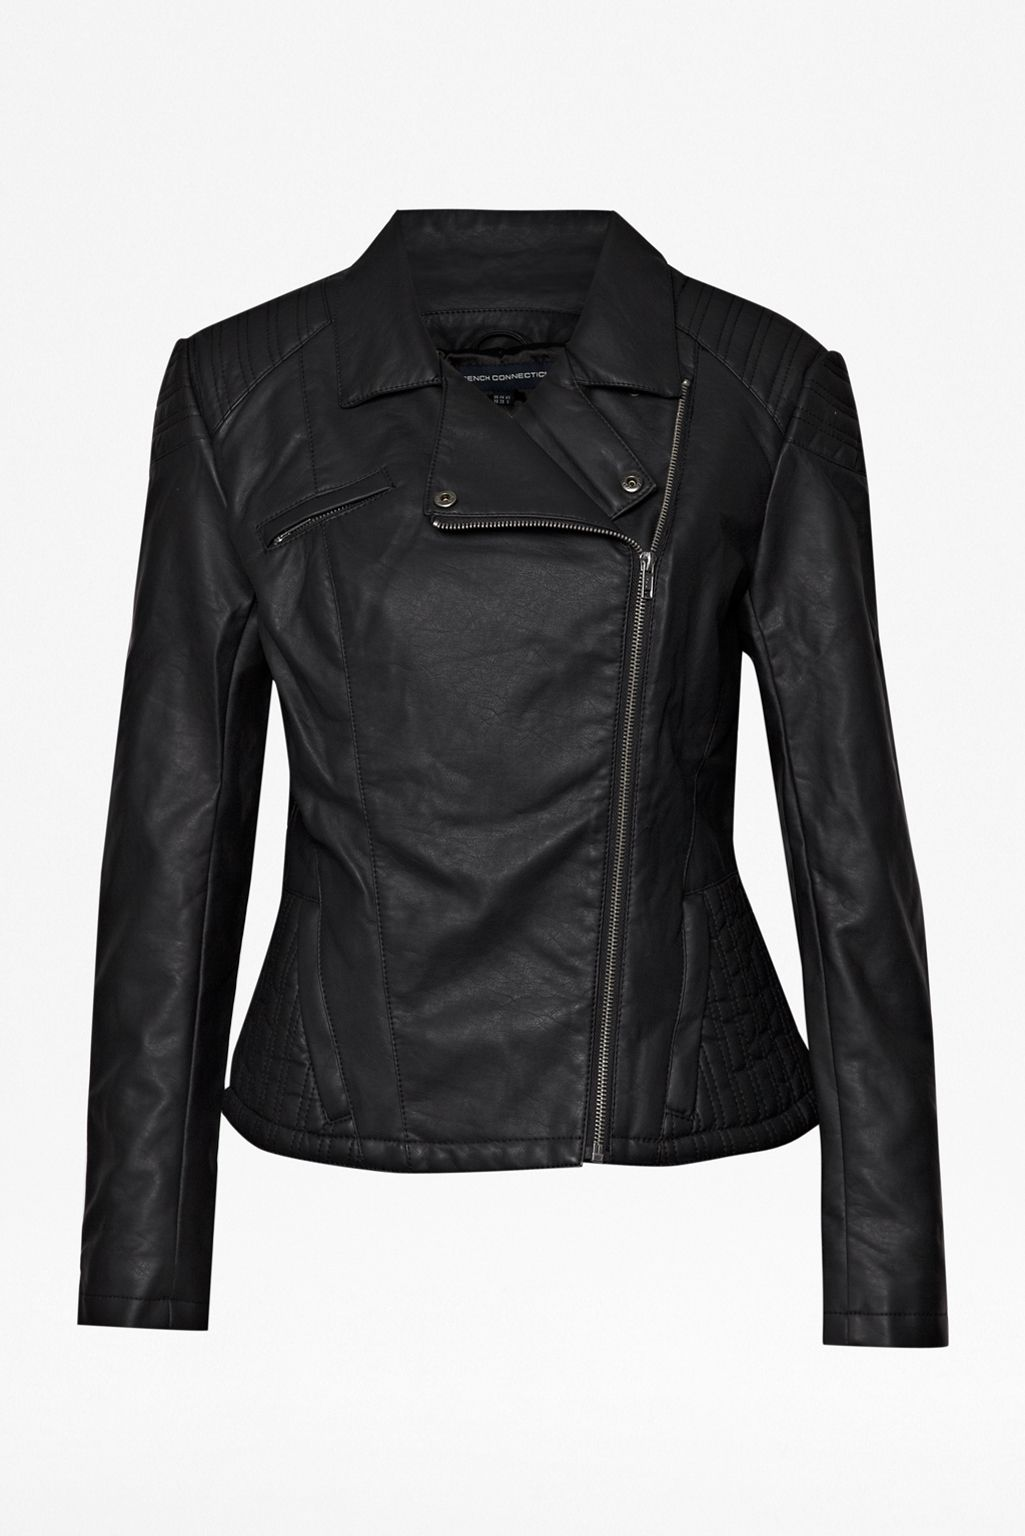 Roller girl long sleeve biker jacket